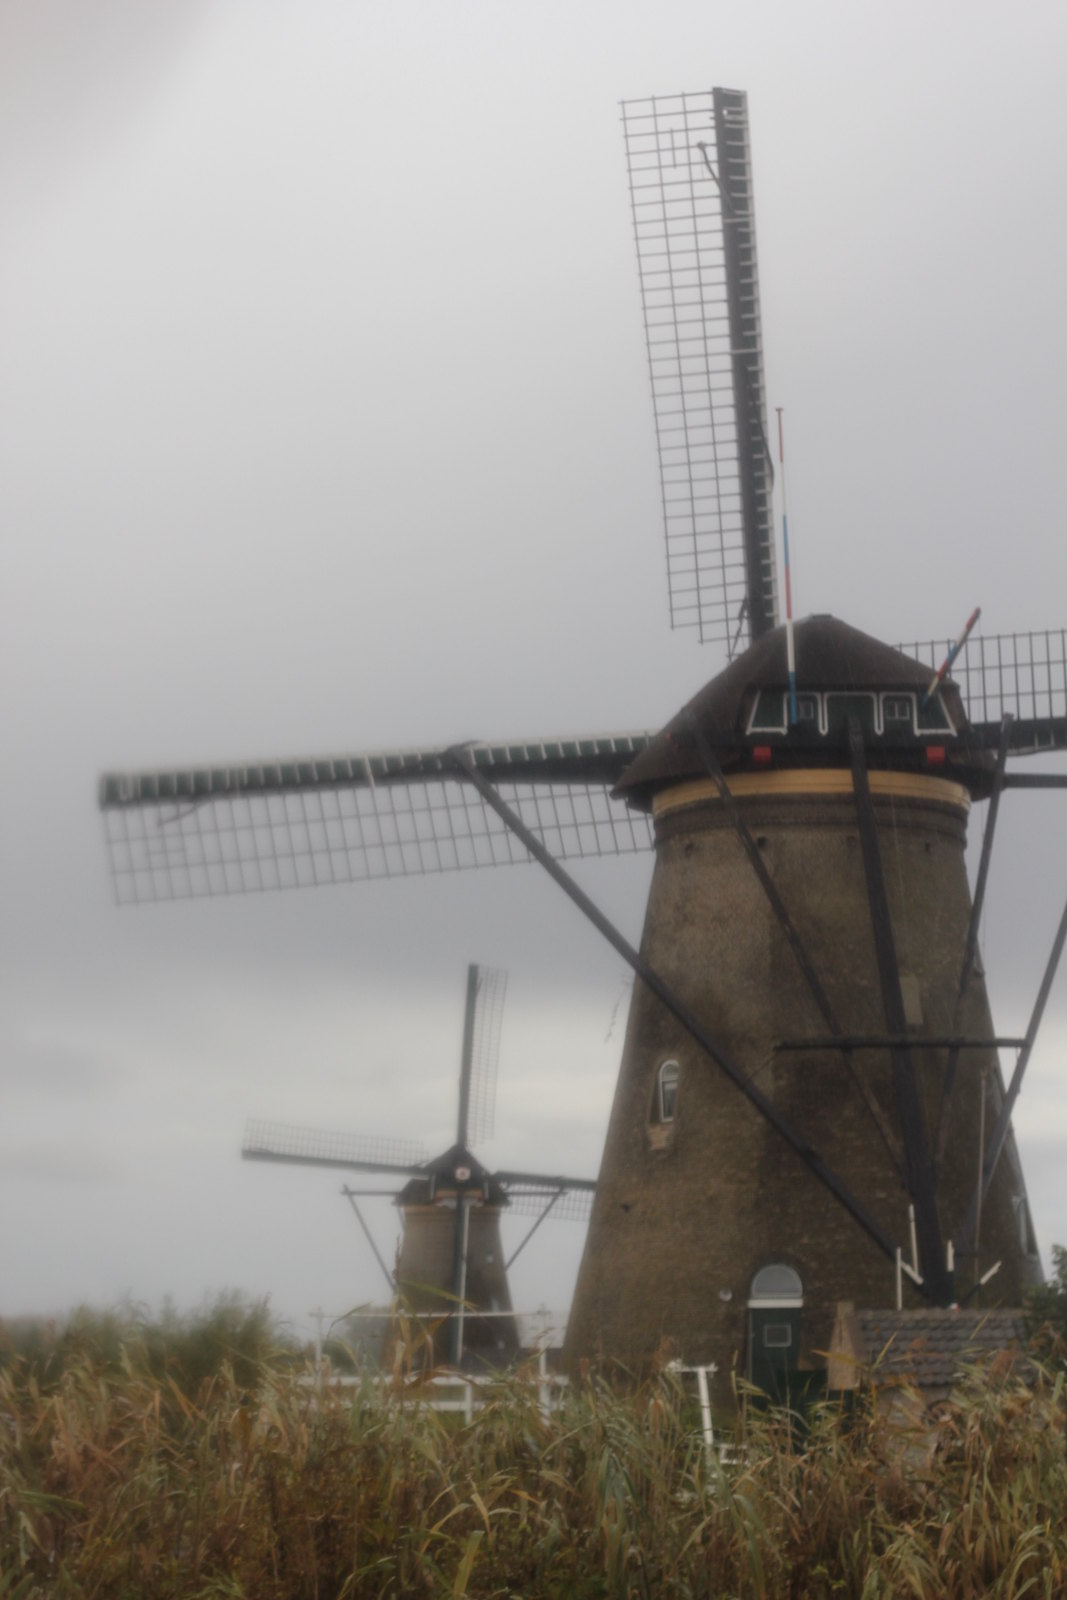 Misty Kinderdijk windmills